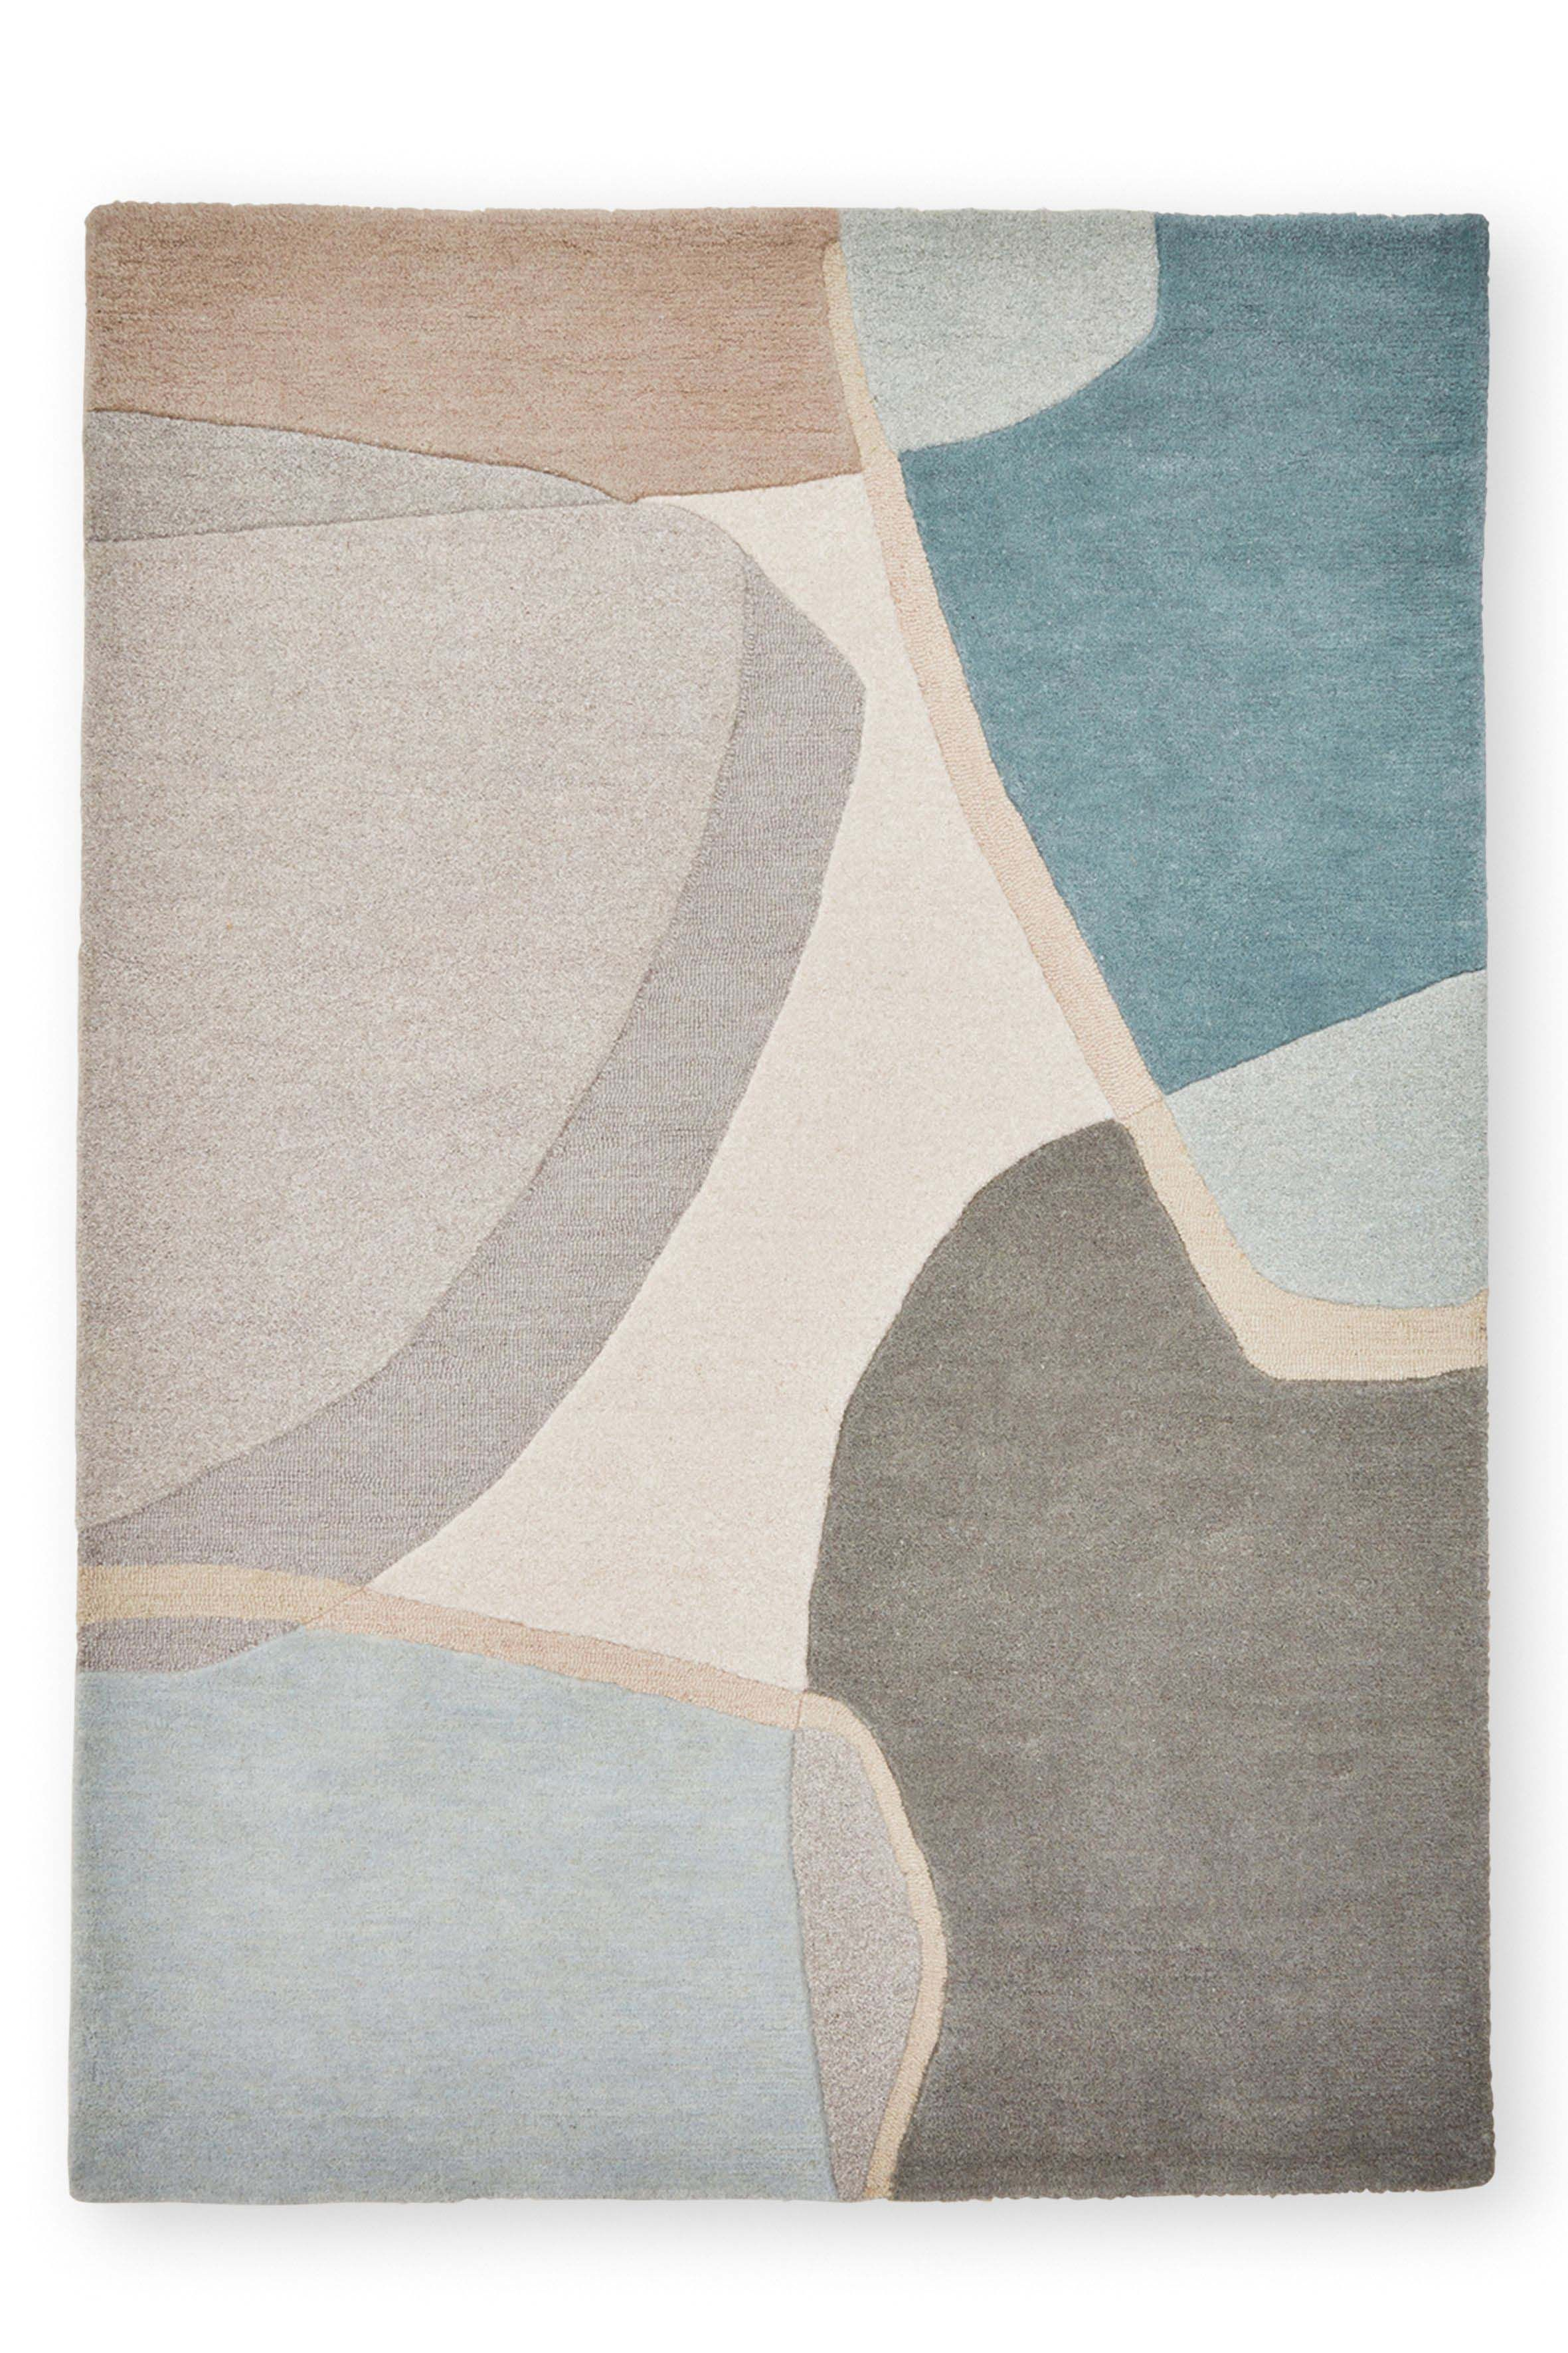 Next Still Abstract Rug Natural In 2020 Rug Texture Rugs On Carpet Natural Rug